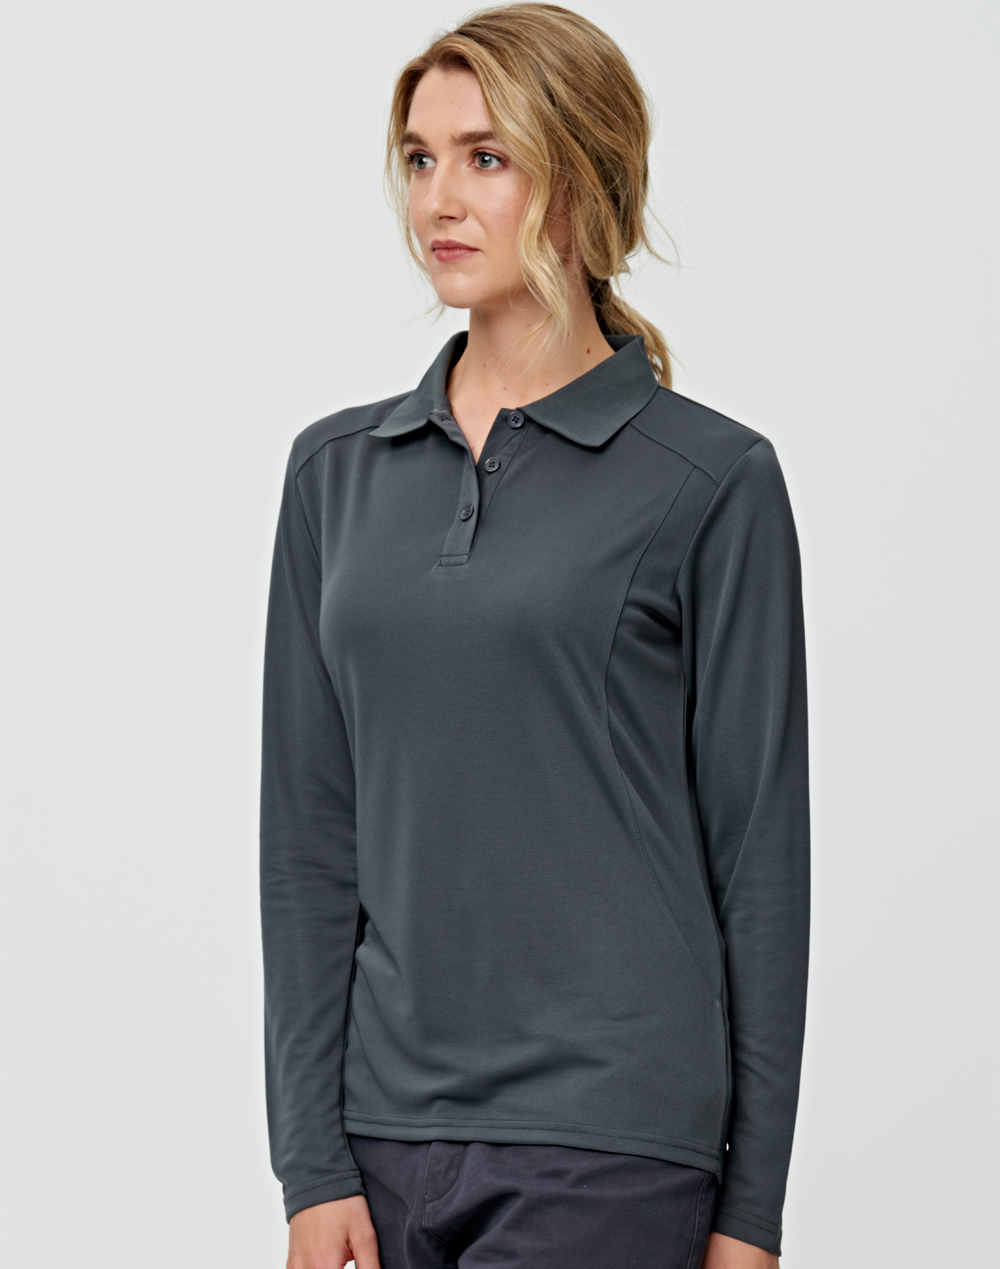 PS90 LUCKY BAMBOO LONG SLEEVE POLO Ladies